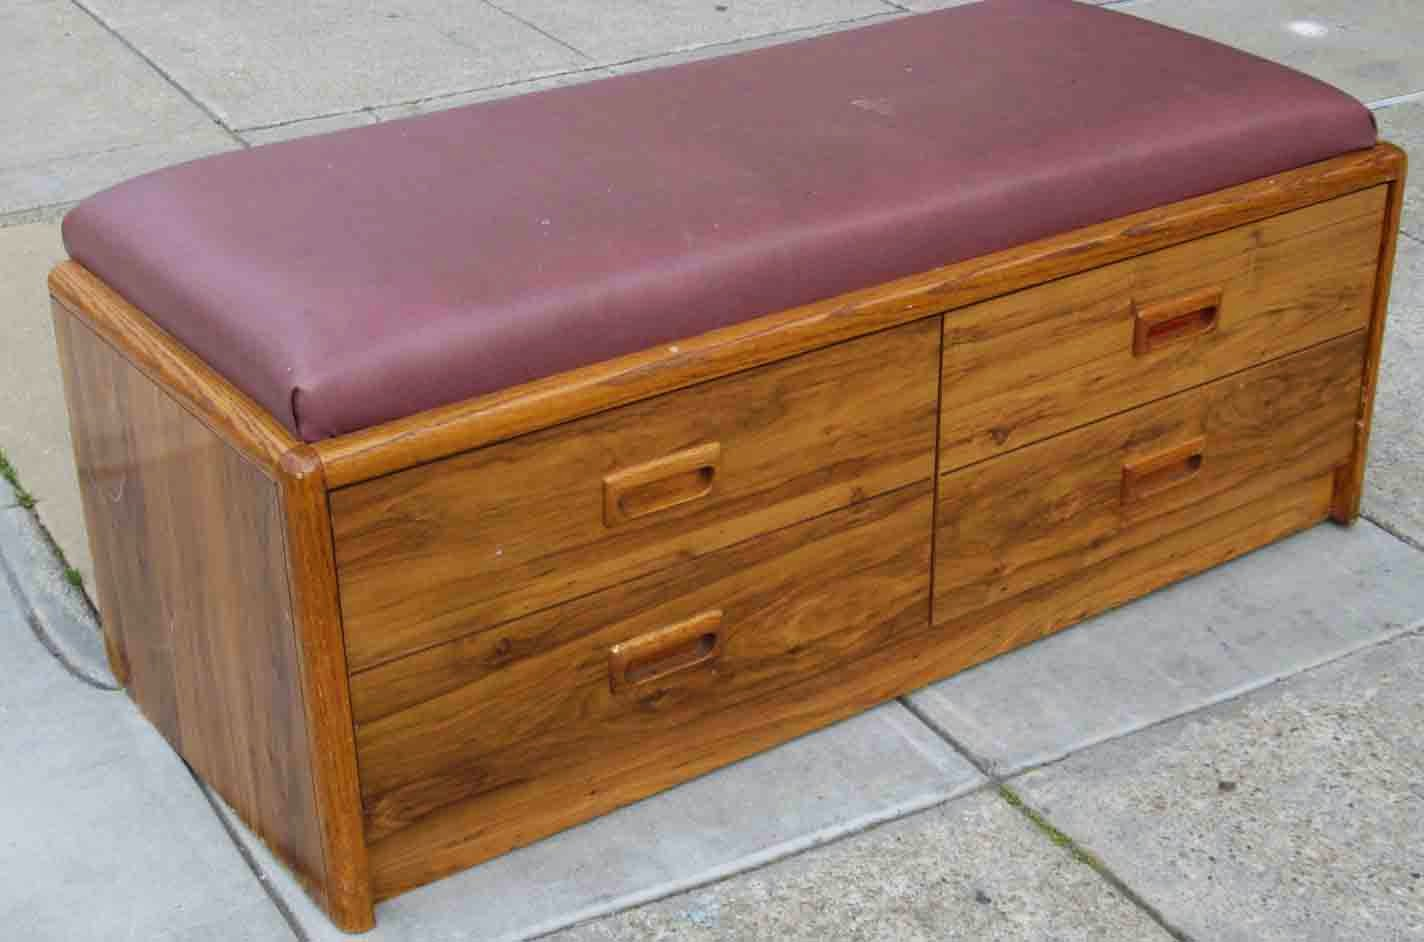 Uhuru furniture collectibles sold cushion top bench with storage 30 30 bench